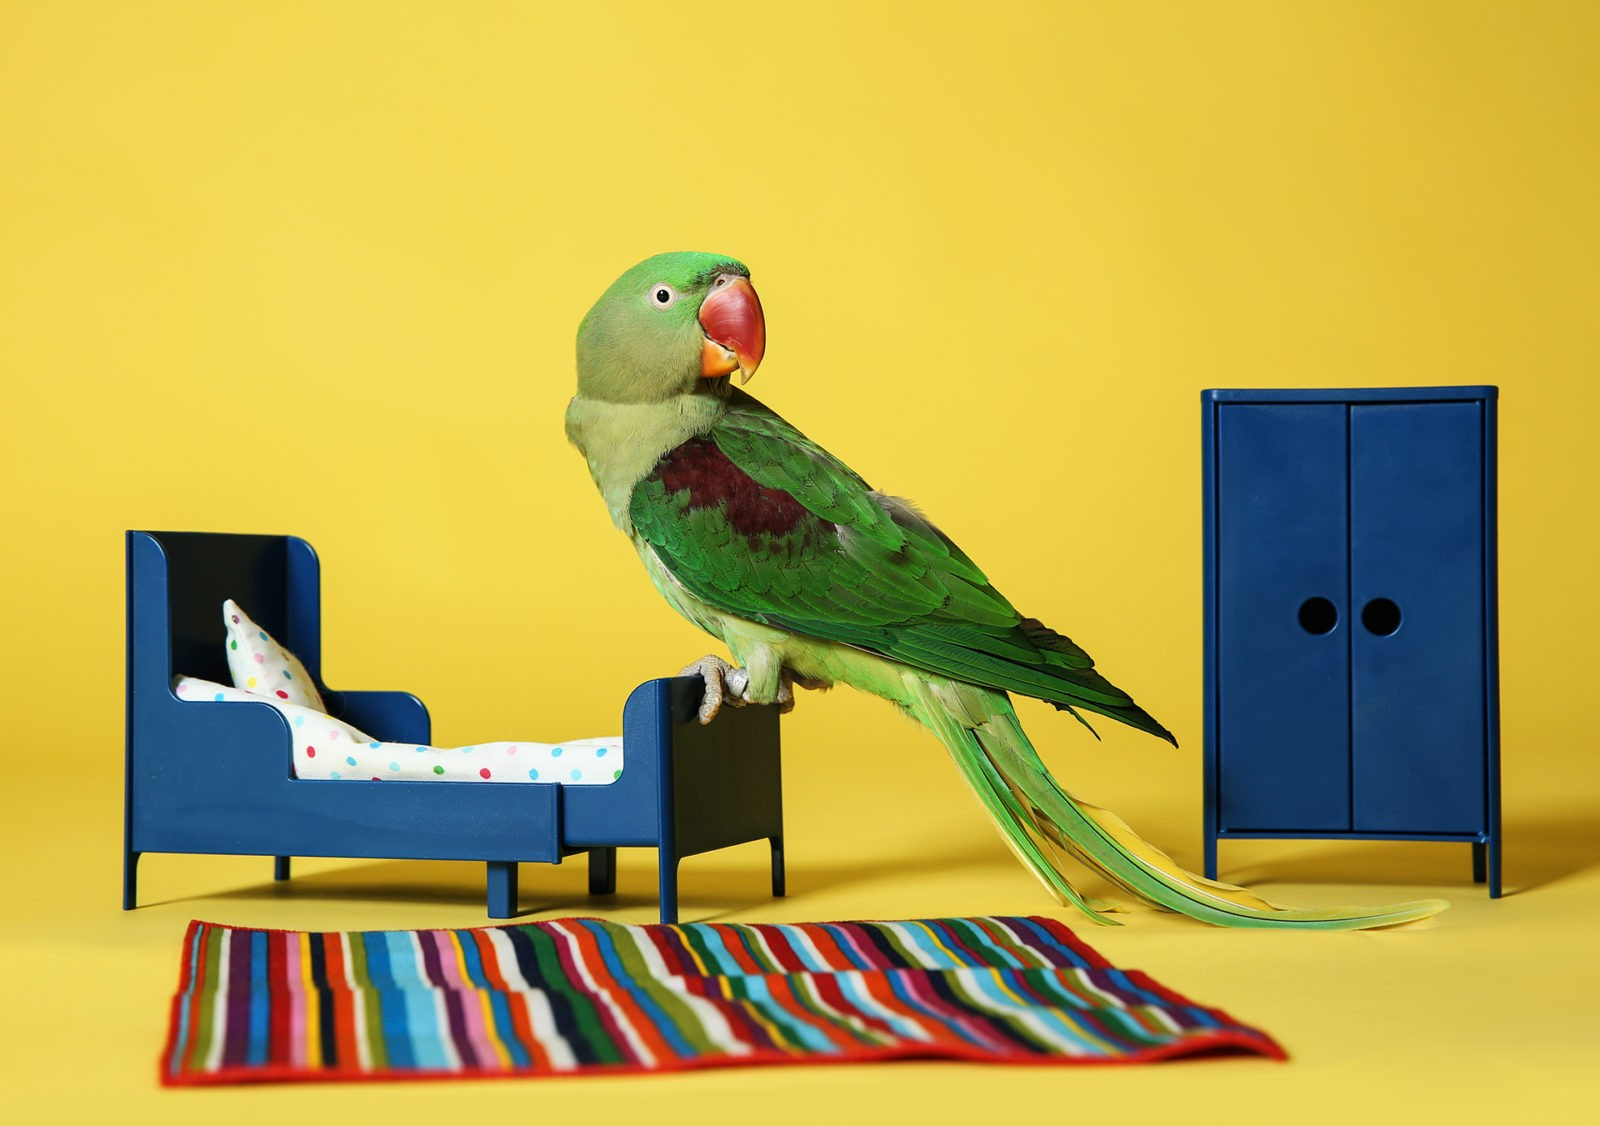 Beautiful Alexandrine Parakeet in toy bedroom on yellow background